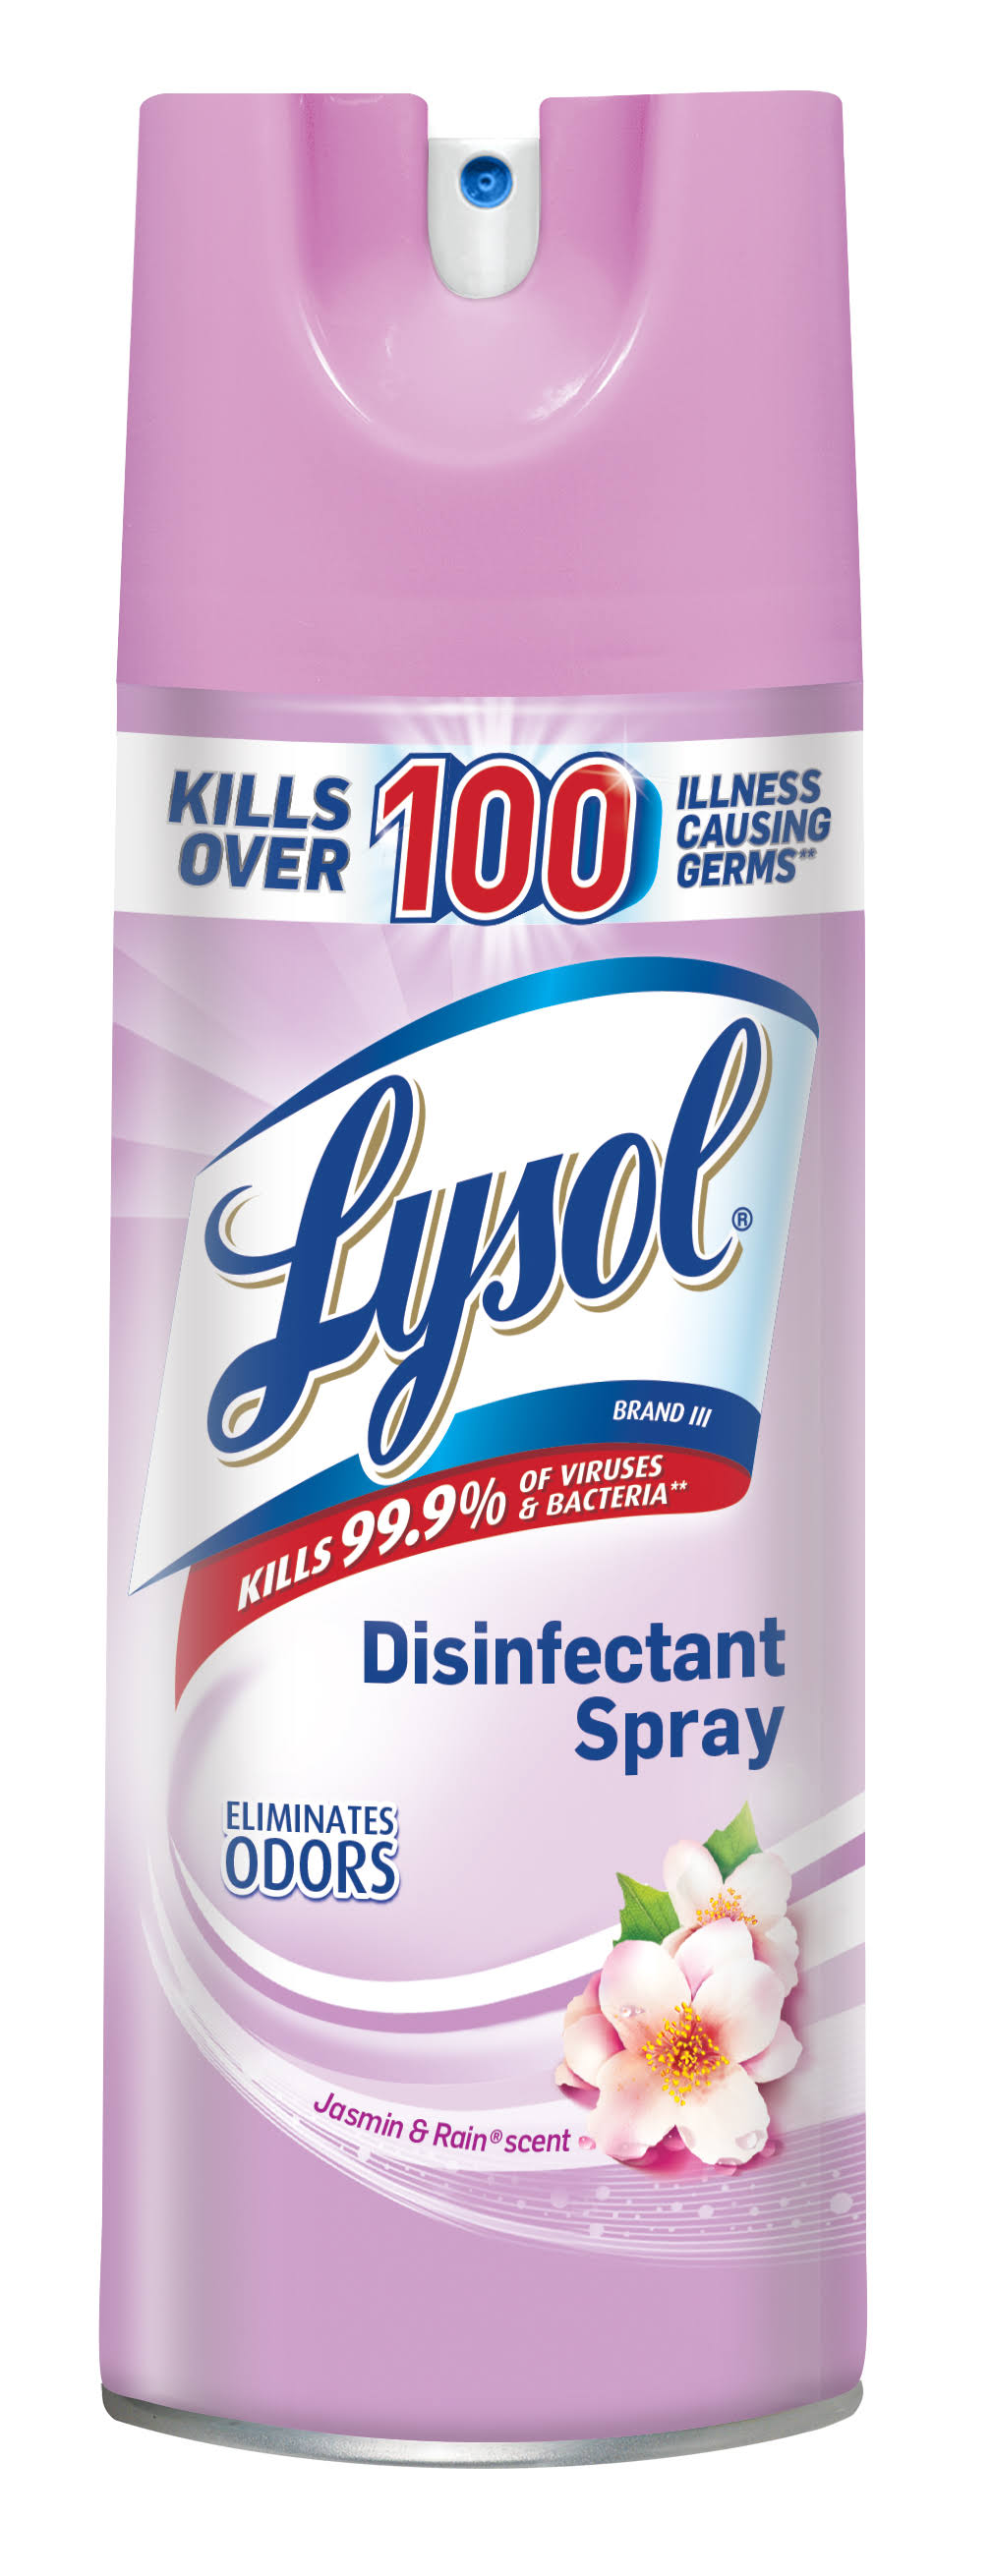 Lysol Disinfectant Spray - Jasmine and Rain, 12.5oz